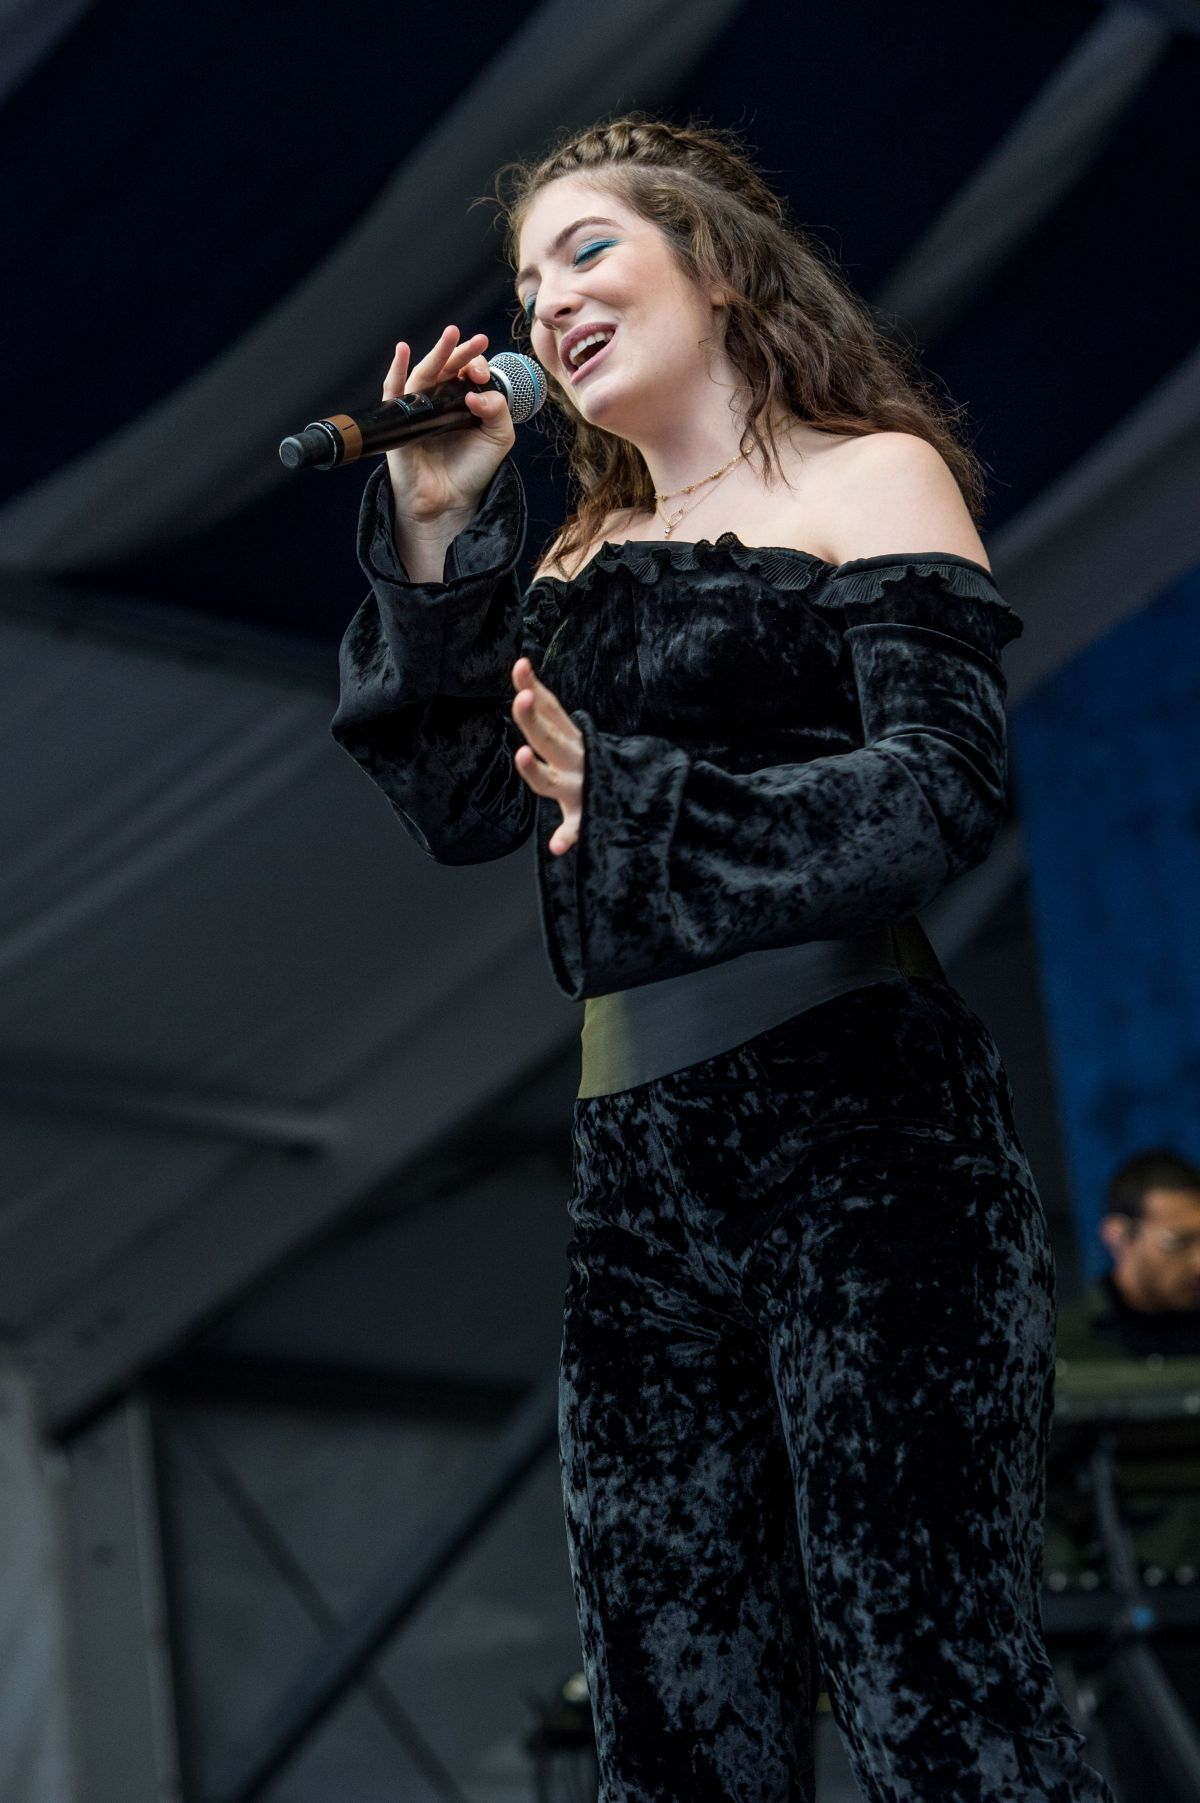 LORDE Performs at New Orleans Jazz and Heritage Festival 04/30/2017